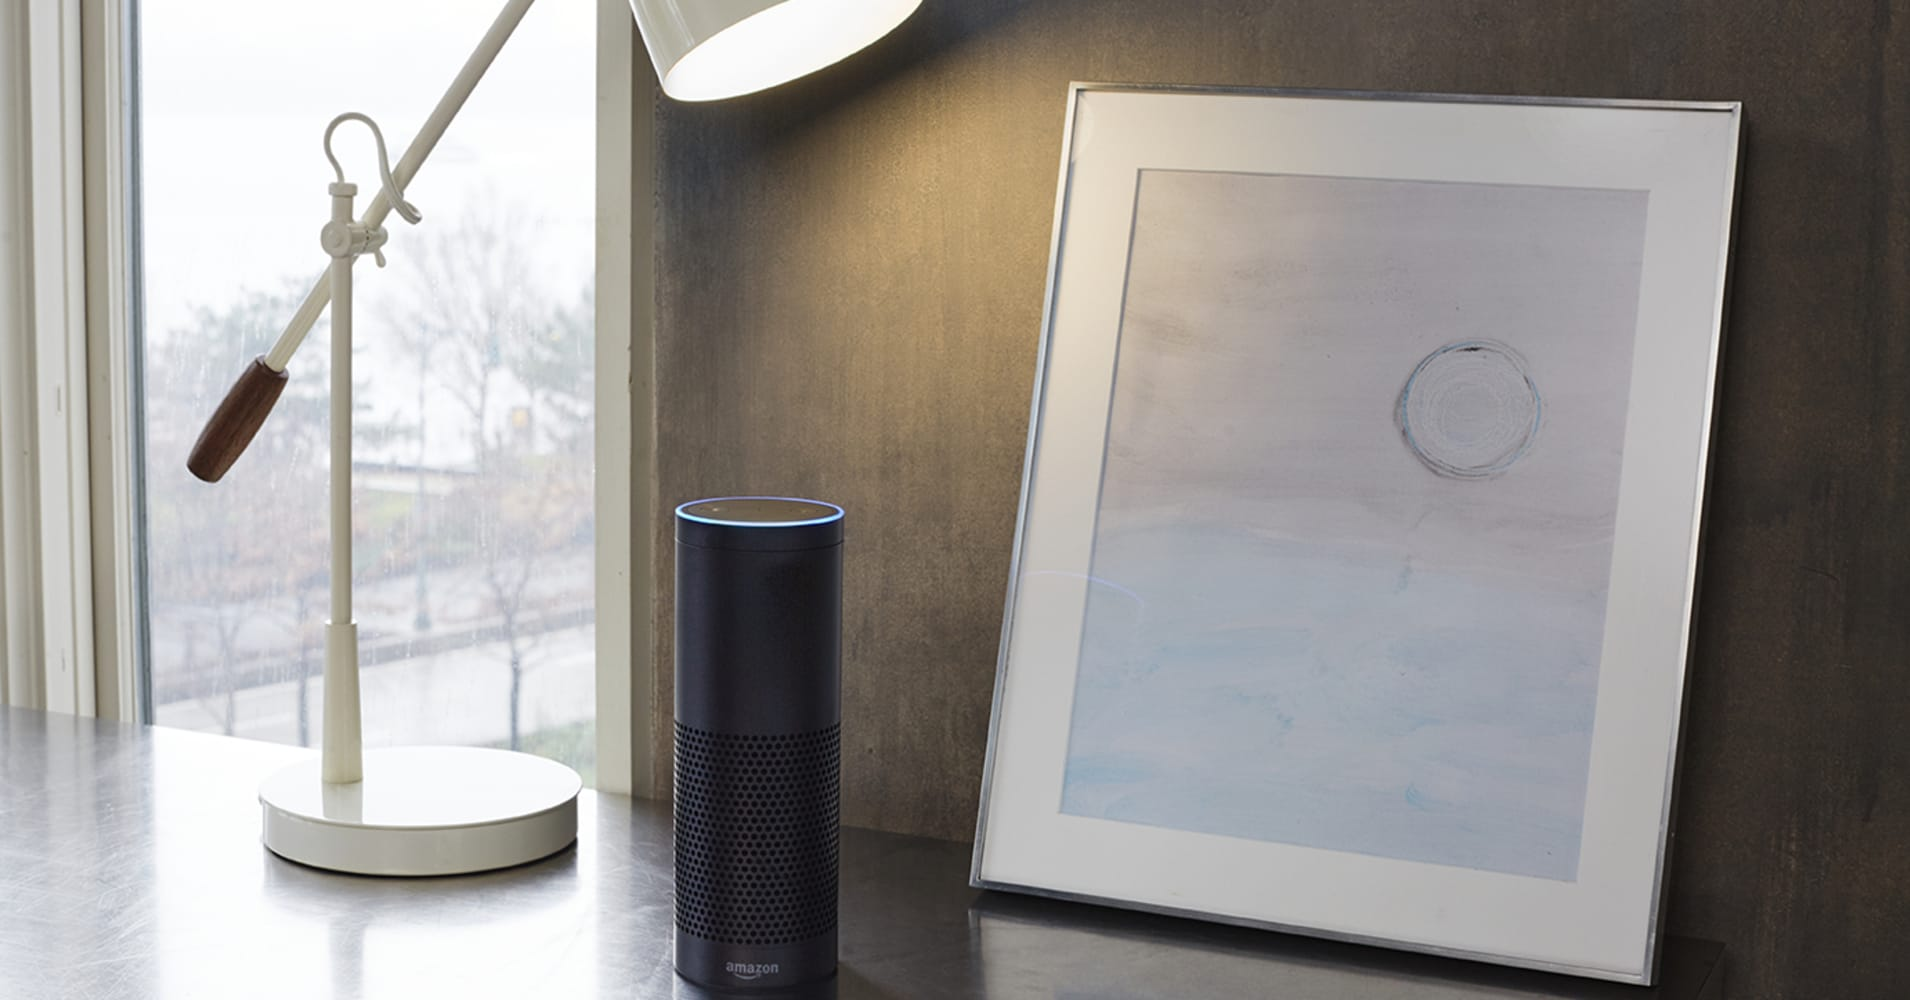 Amazon Sweeps US Market for Voice-controlled Speakers